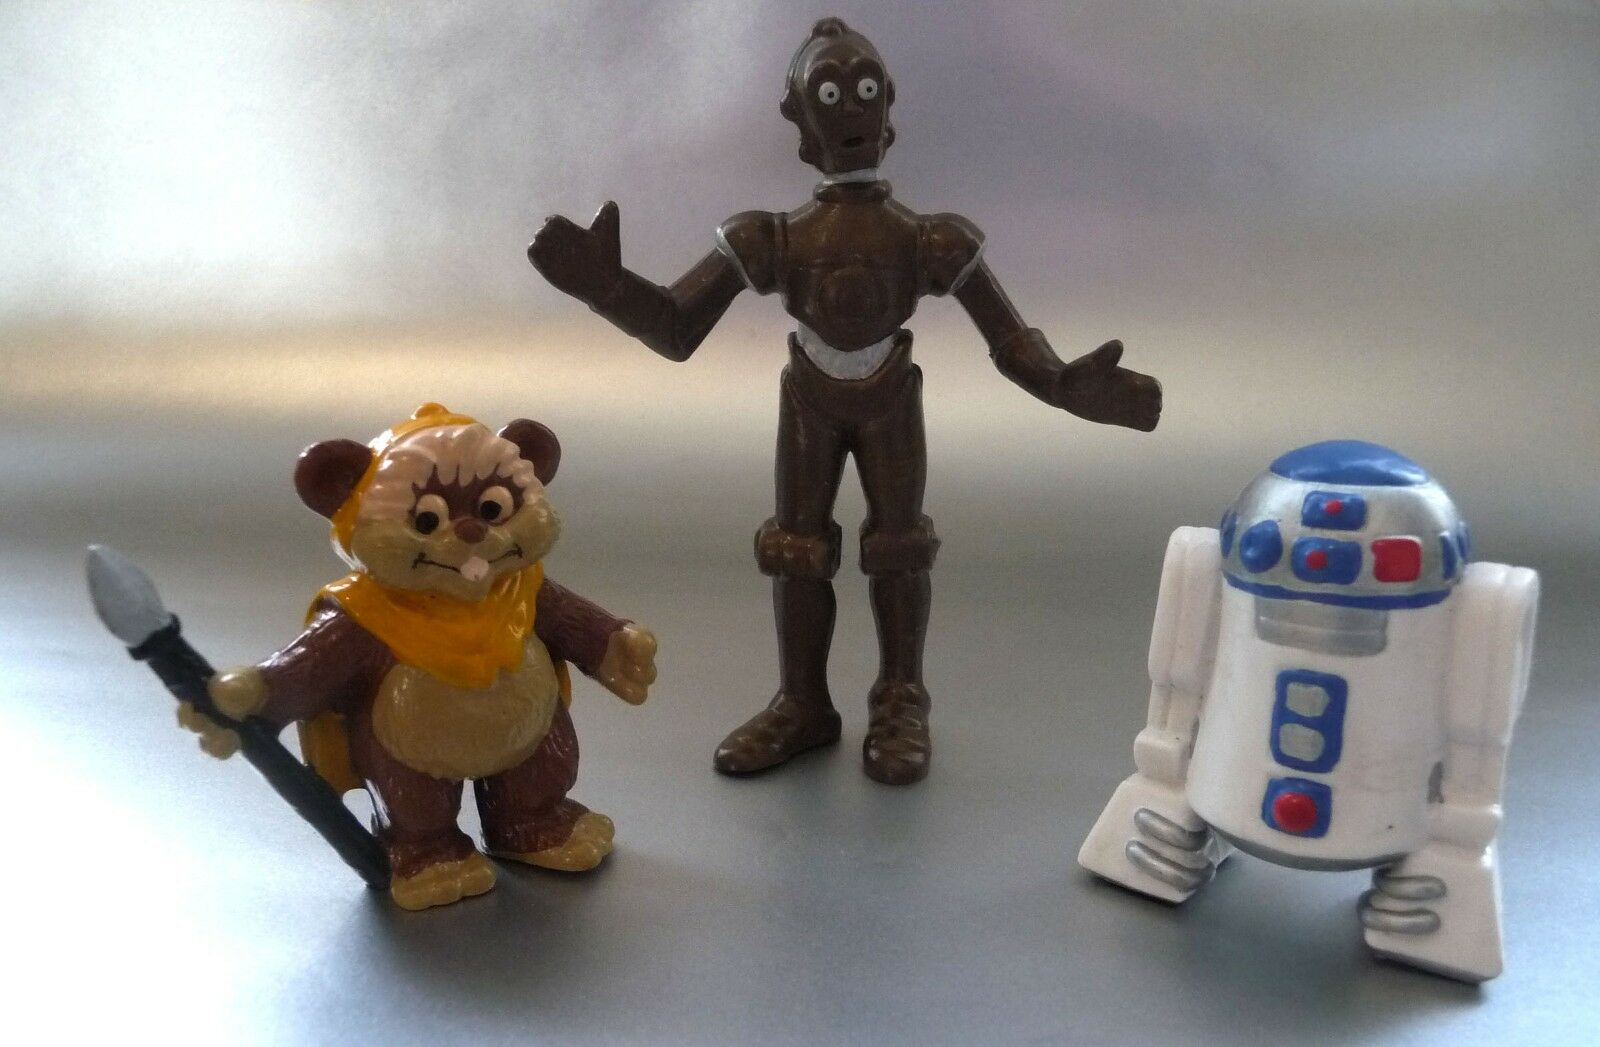 StarWars collection : FIGURINE ANCIENNE STAR WARS / LUCAS FILM / R2D2 - EWOKS - C3PO